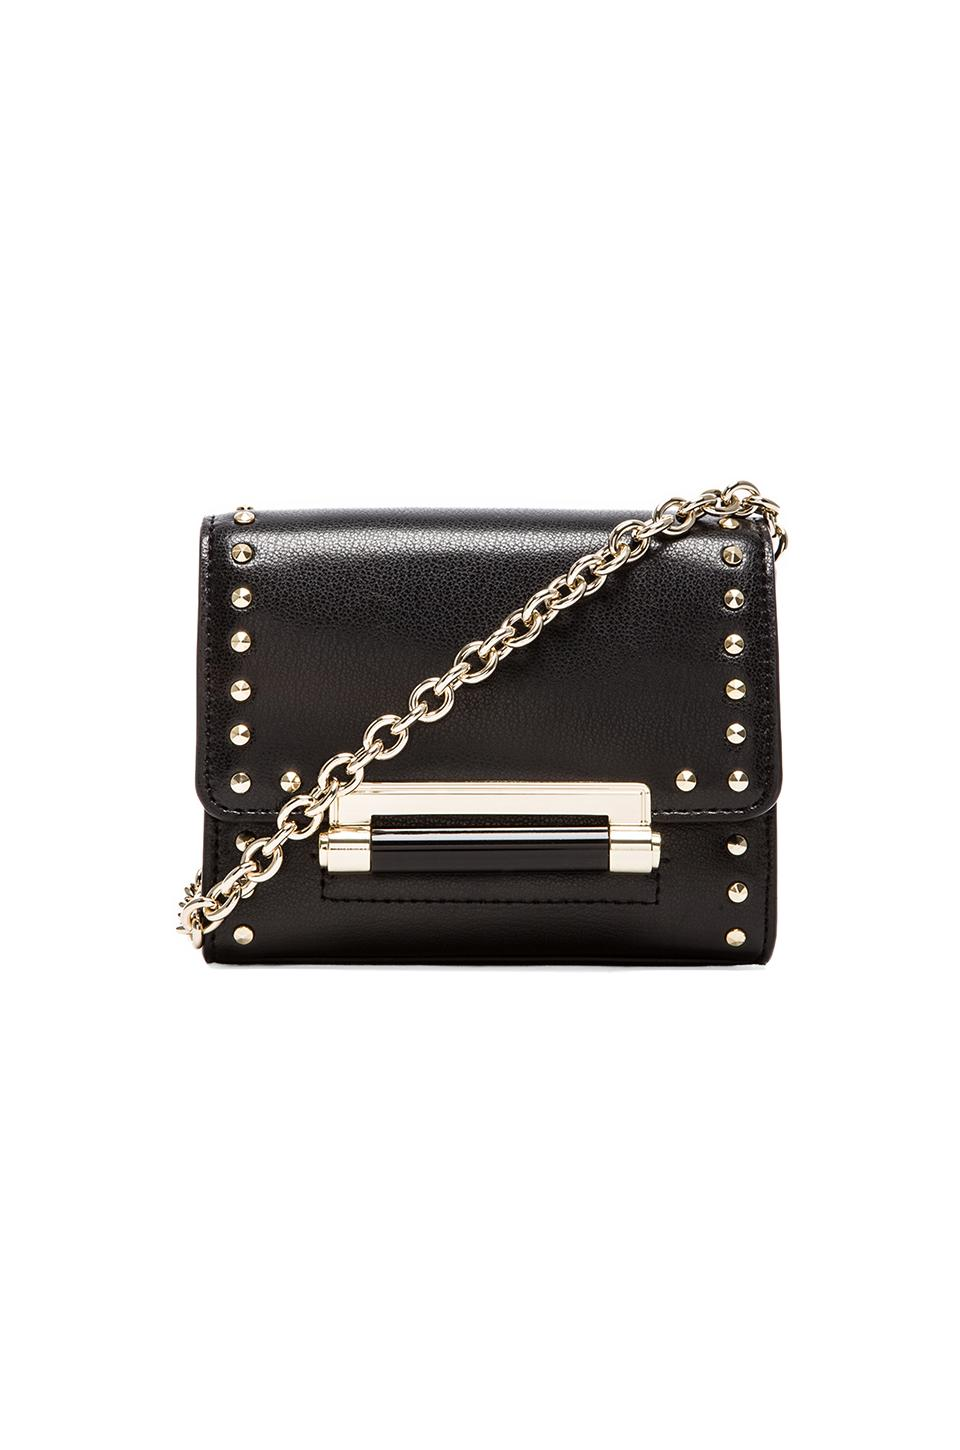 Diane von Furstenberg Highline Micro Mini in Black